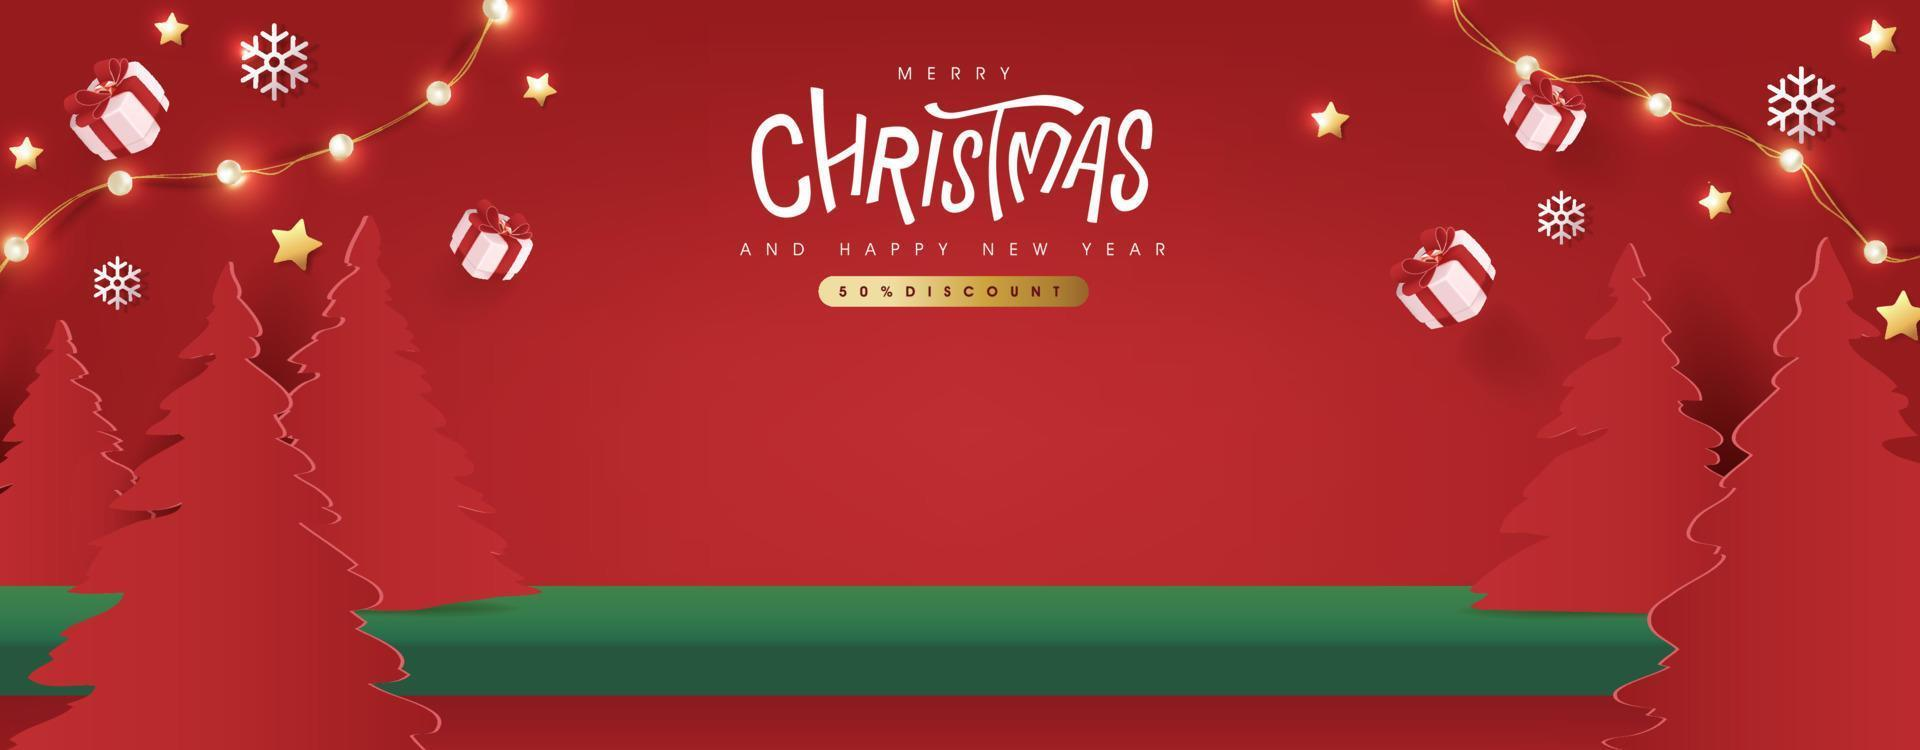 Merry Christmas banner studio table room product display copy space vector